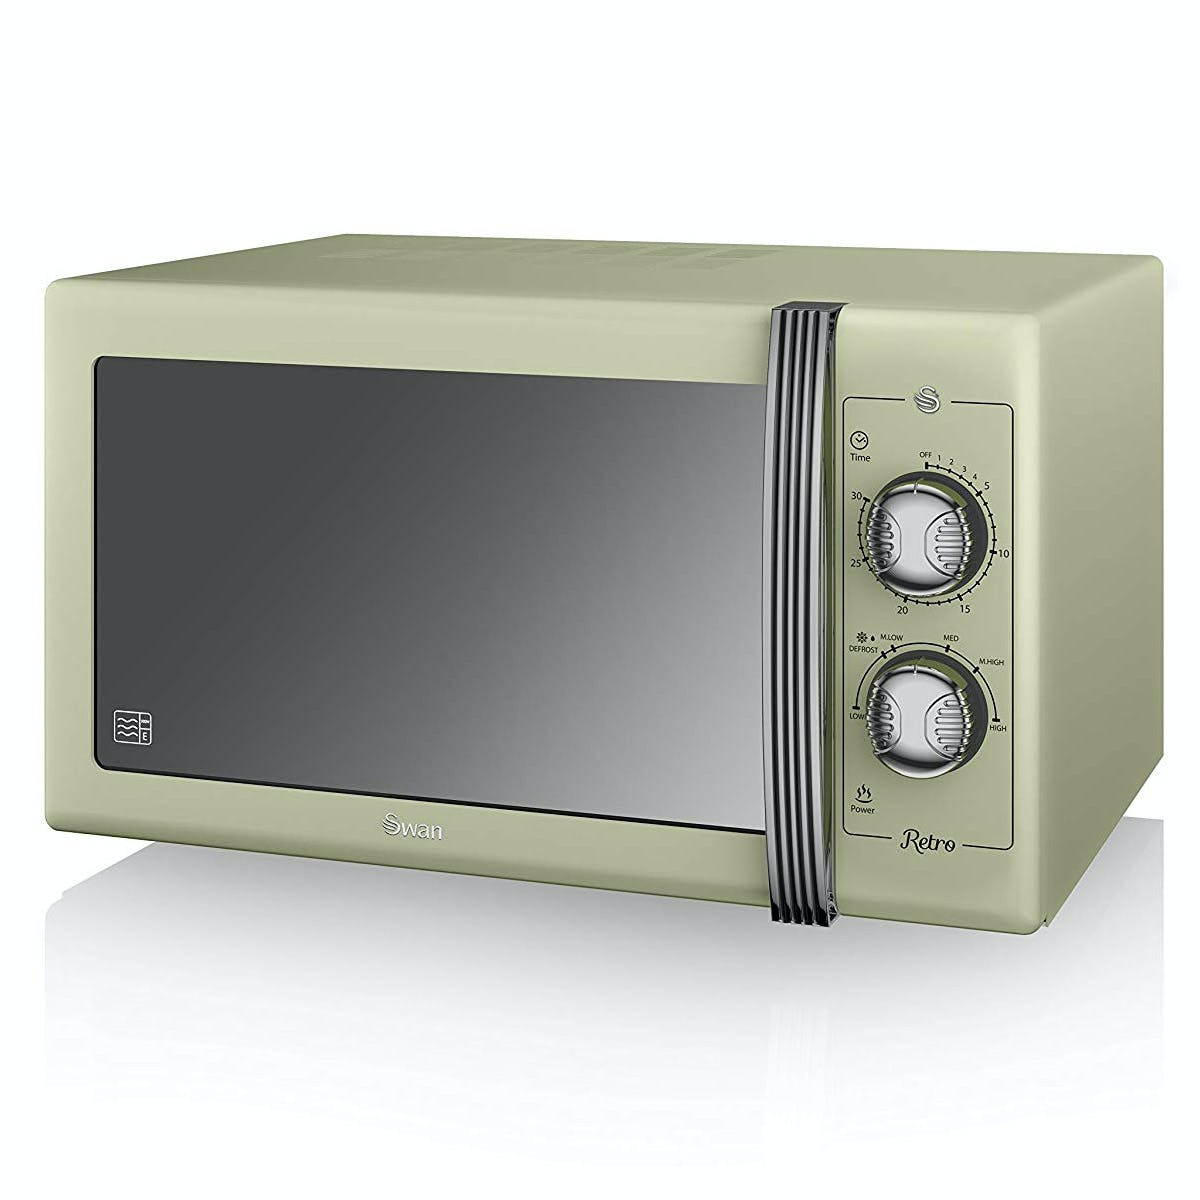 swan sm22070gn retro style microwave oven in green 25 litre 900w